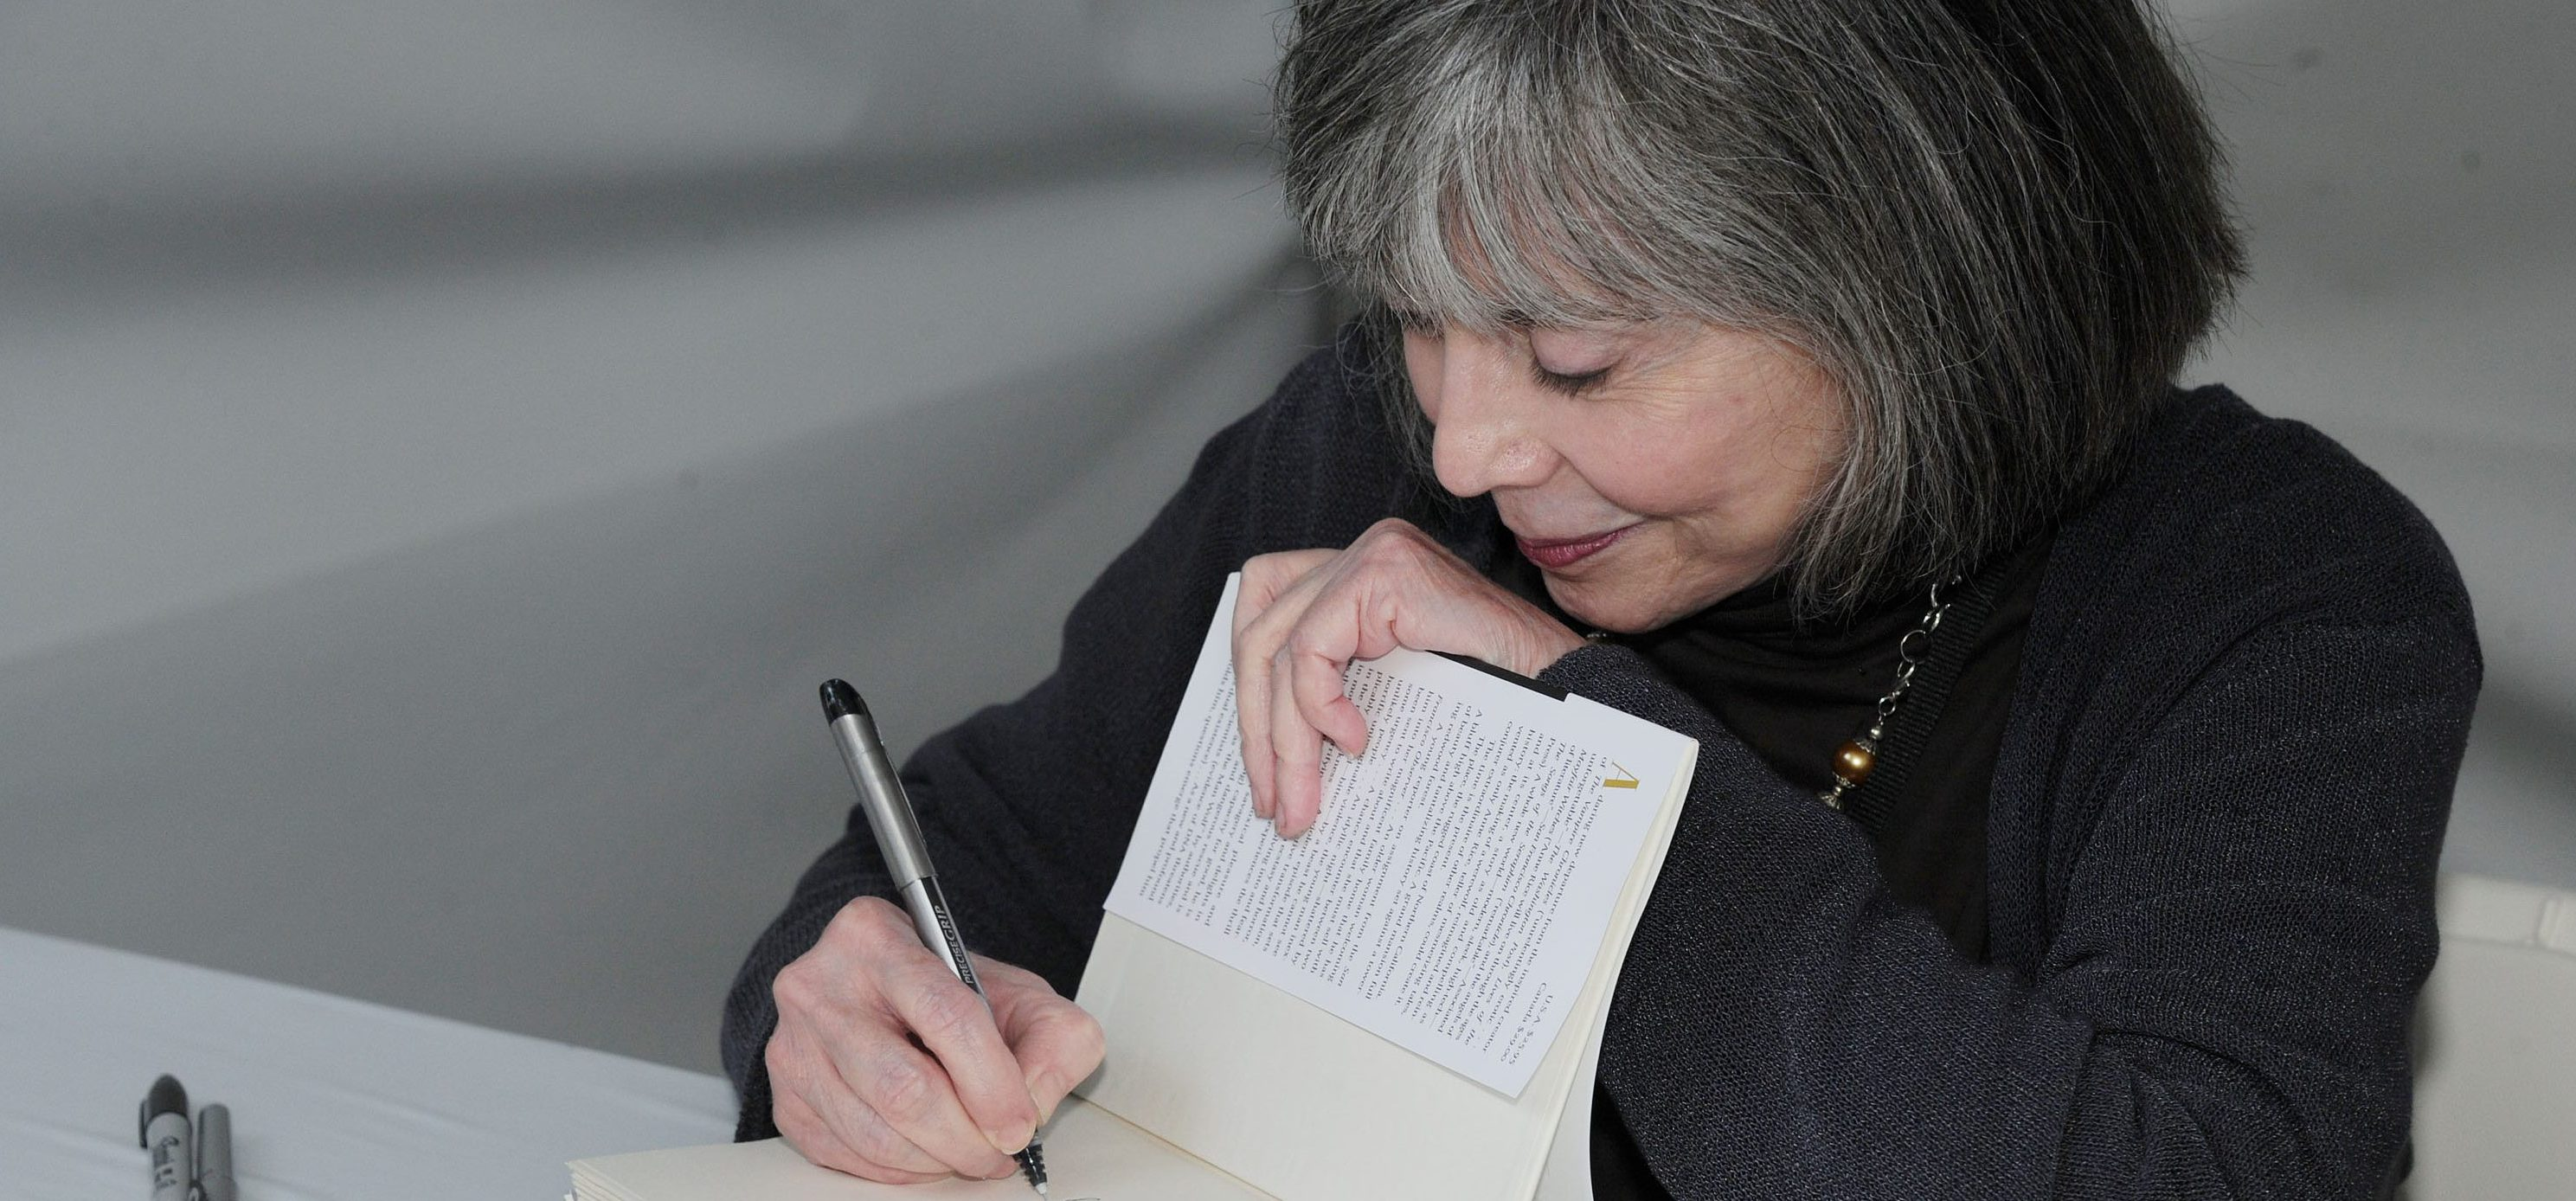 Anne Rice attends LA Times Festival of Books, Sun, April. 22, 2012, at the USC Campus in Los Angeles. The Los Angeles Times Festival of Books began in 1996, attracting more than 140,000 book enthusiasts each year.(AP Photo/Katy Winn)